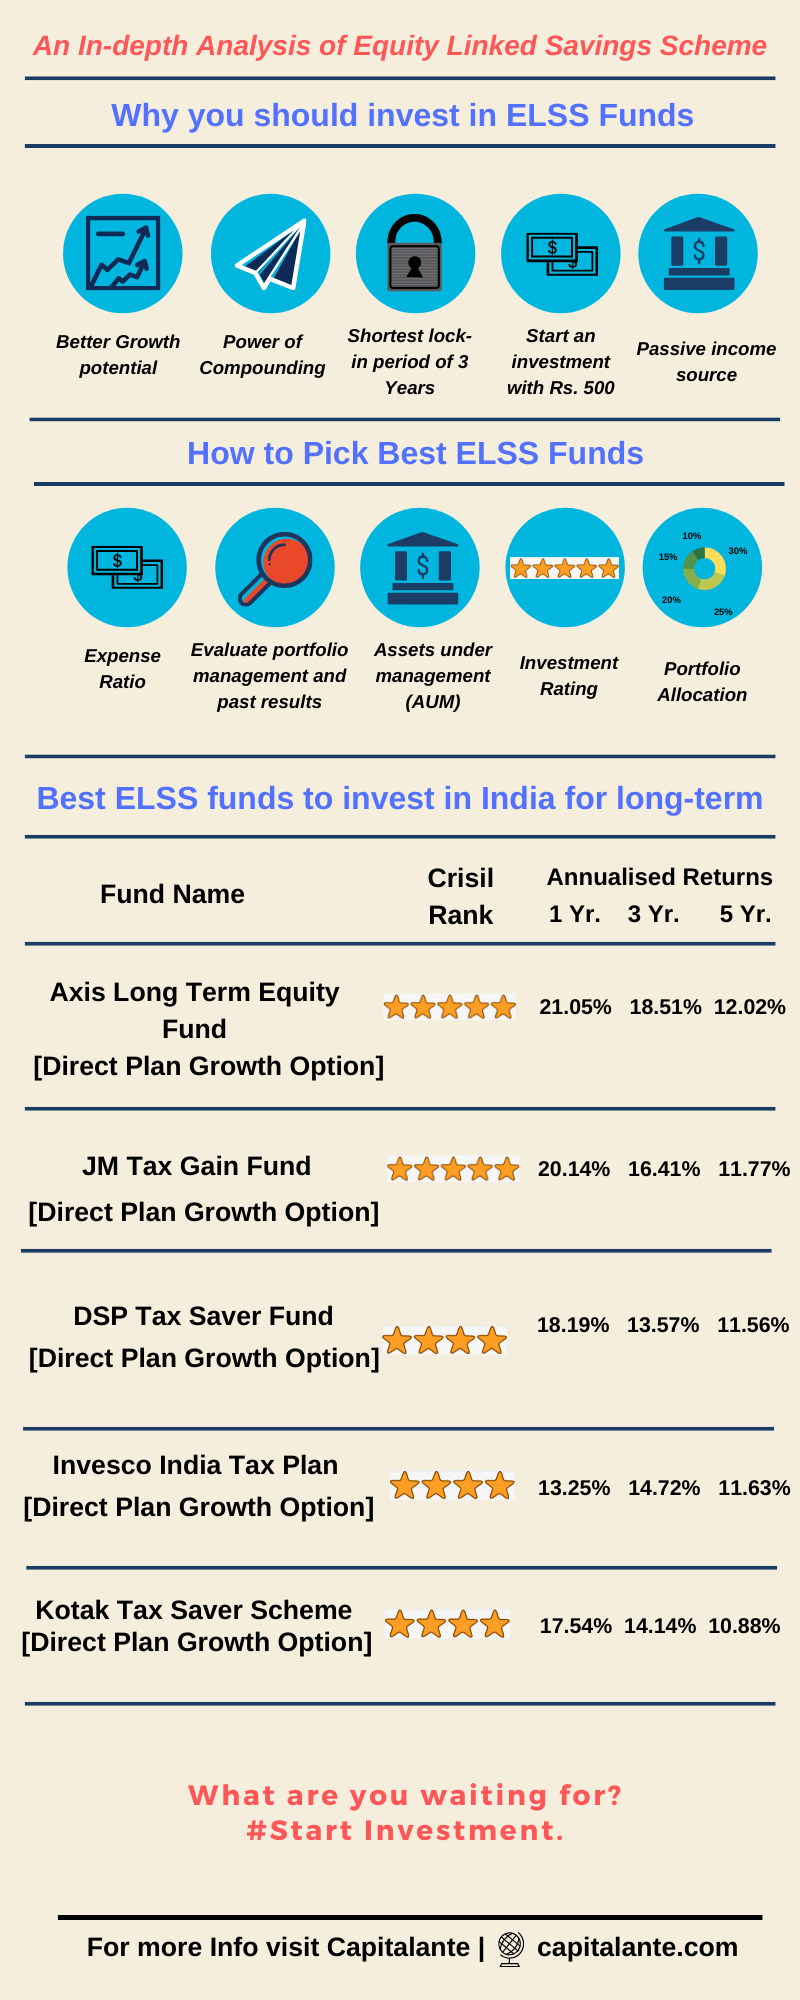 Best ELSS funds to invest in India